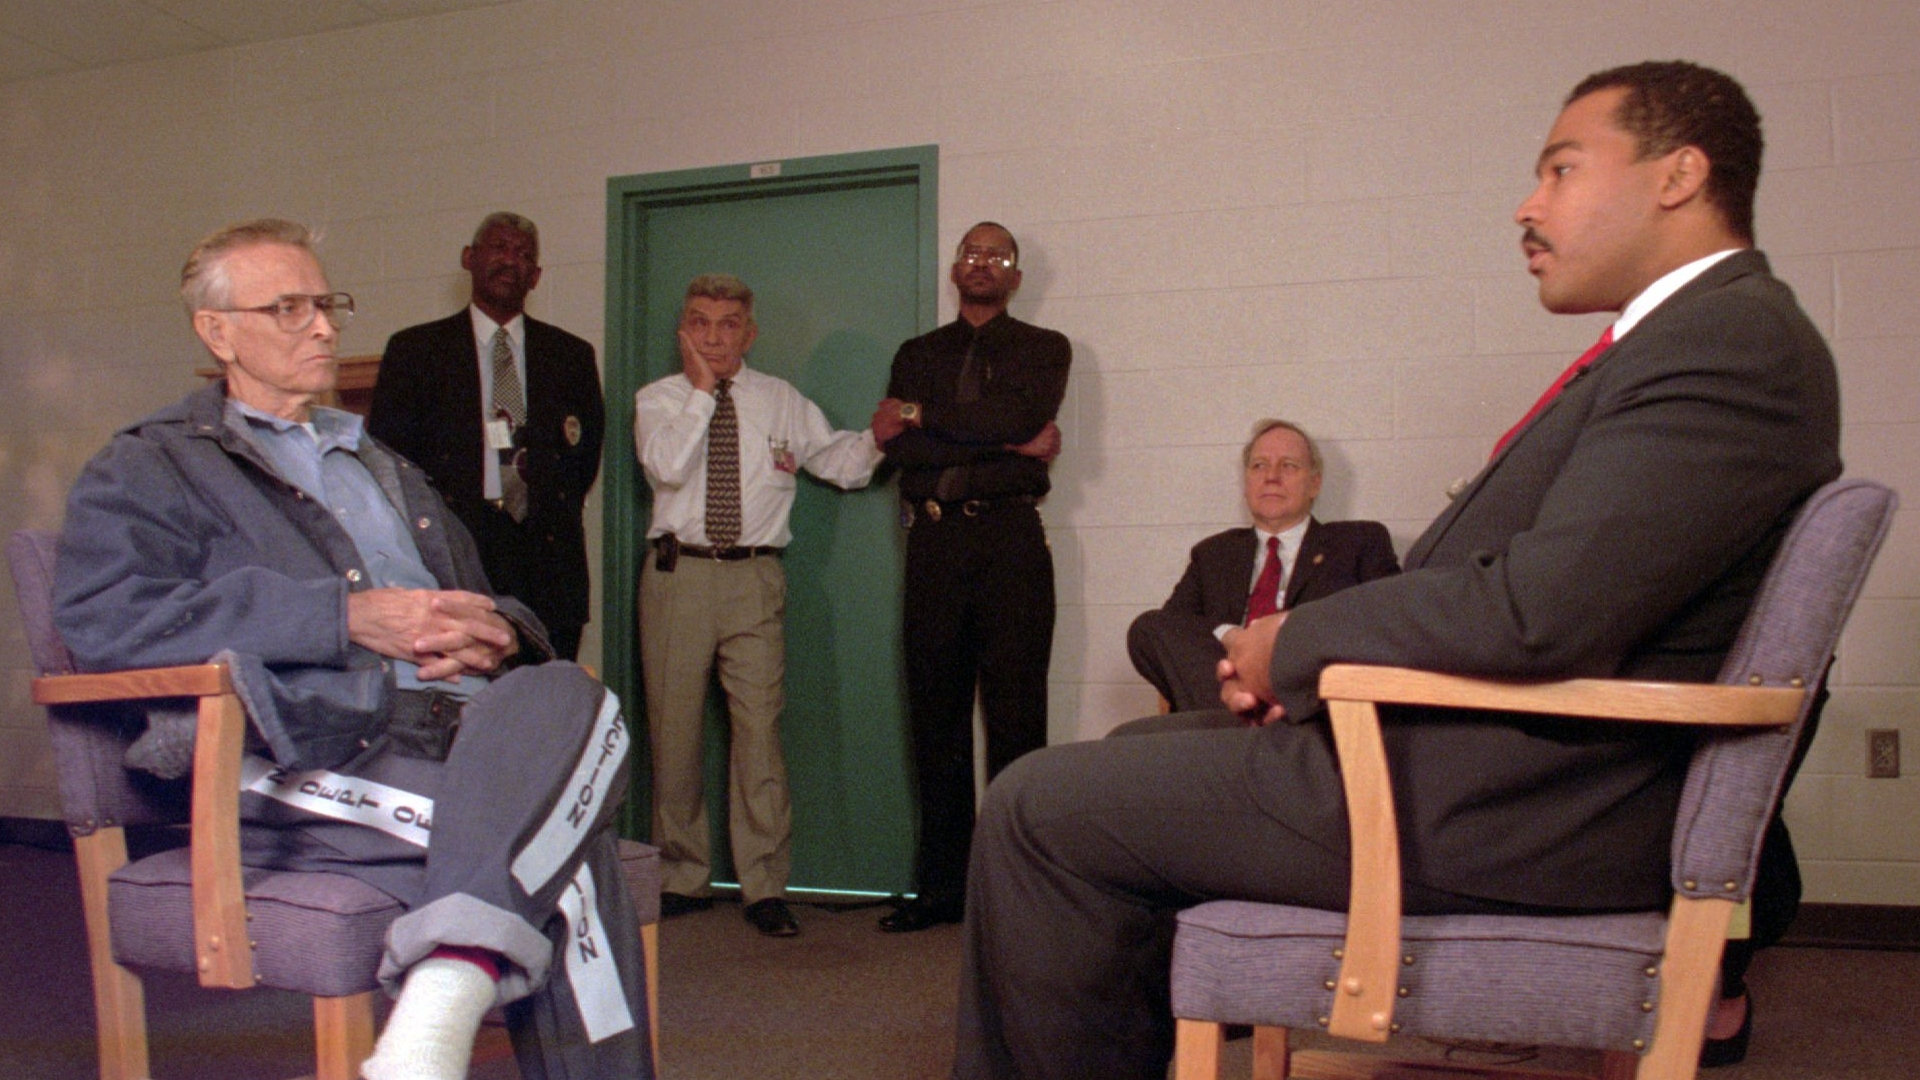 Dexter King, son of slain civil rights leader Martin Luther King, Jr., meeting with James Earl Ray the man who confessed to killing King. (Credit: State of Tennessee, Earl Warren/AP Photo)